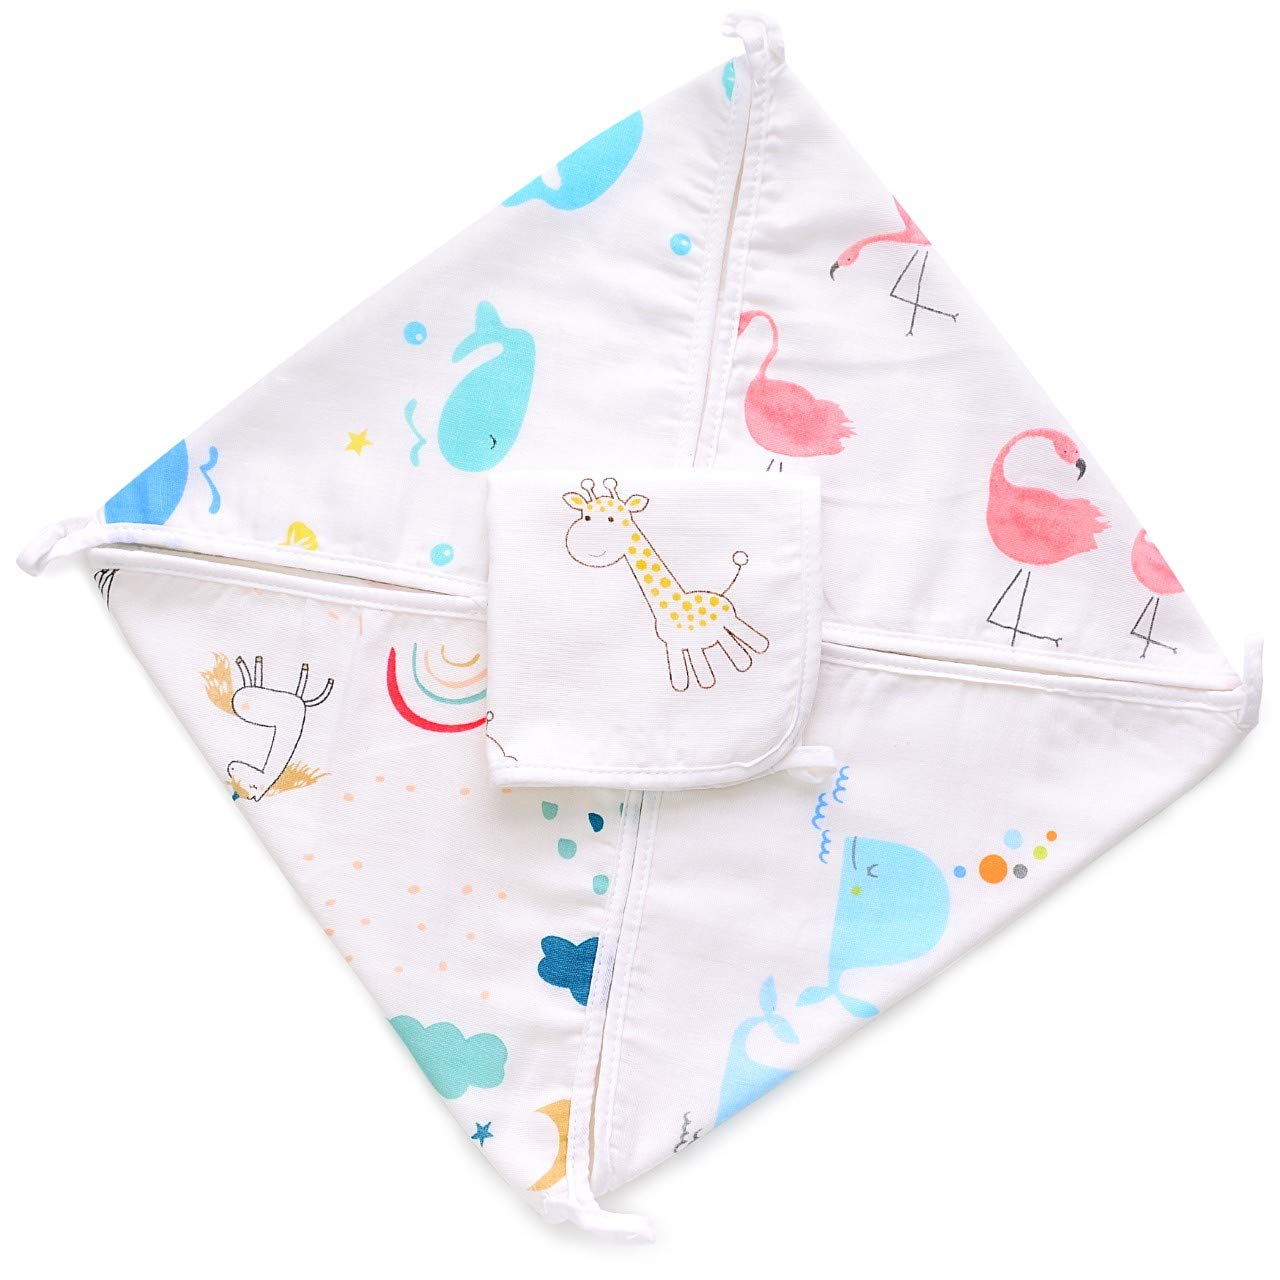 Amazon Com Baby Washcloths 5 Pack Ultra Soft Absorbent Natural Bamboo Cotton Washcloths Dual Texture Hypoallergenic For Sensitive Skin Newborn Bath Face Towel Unicorn Baby